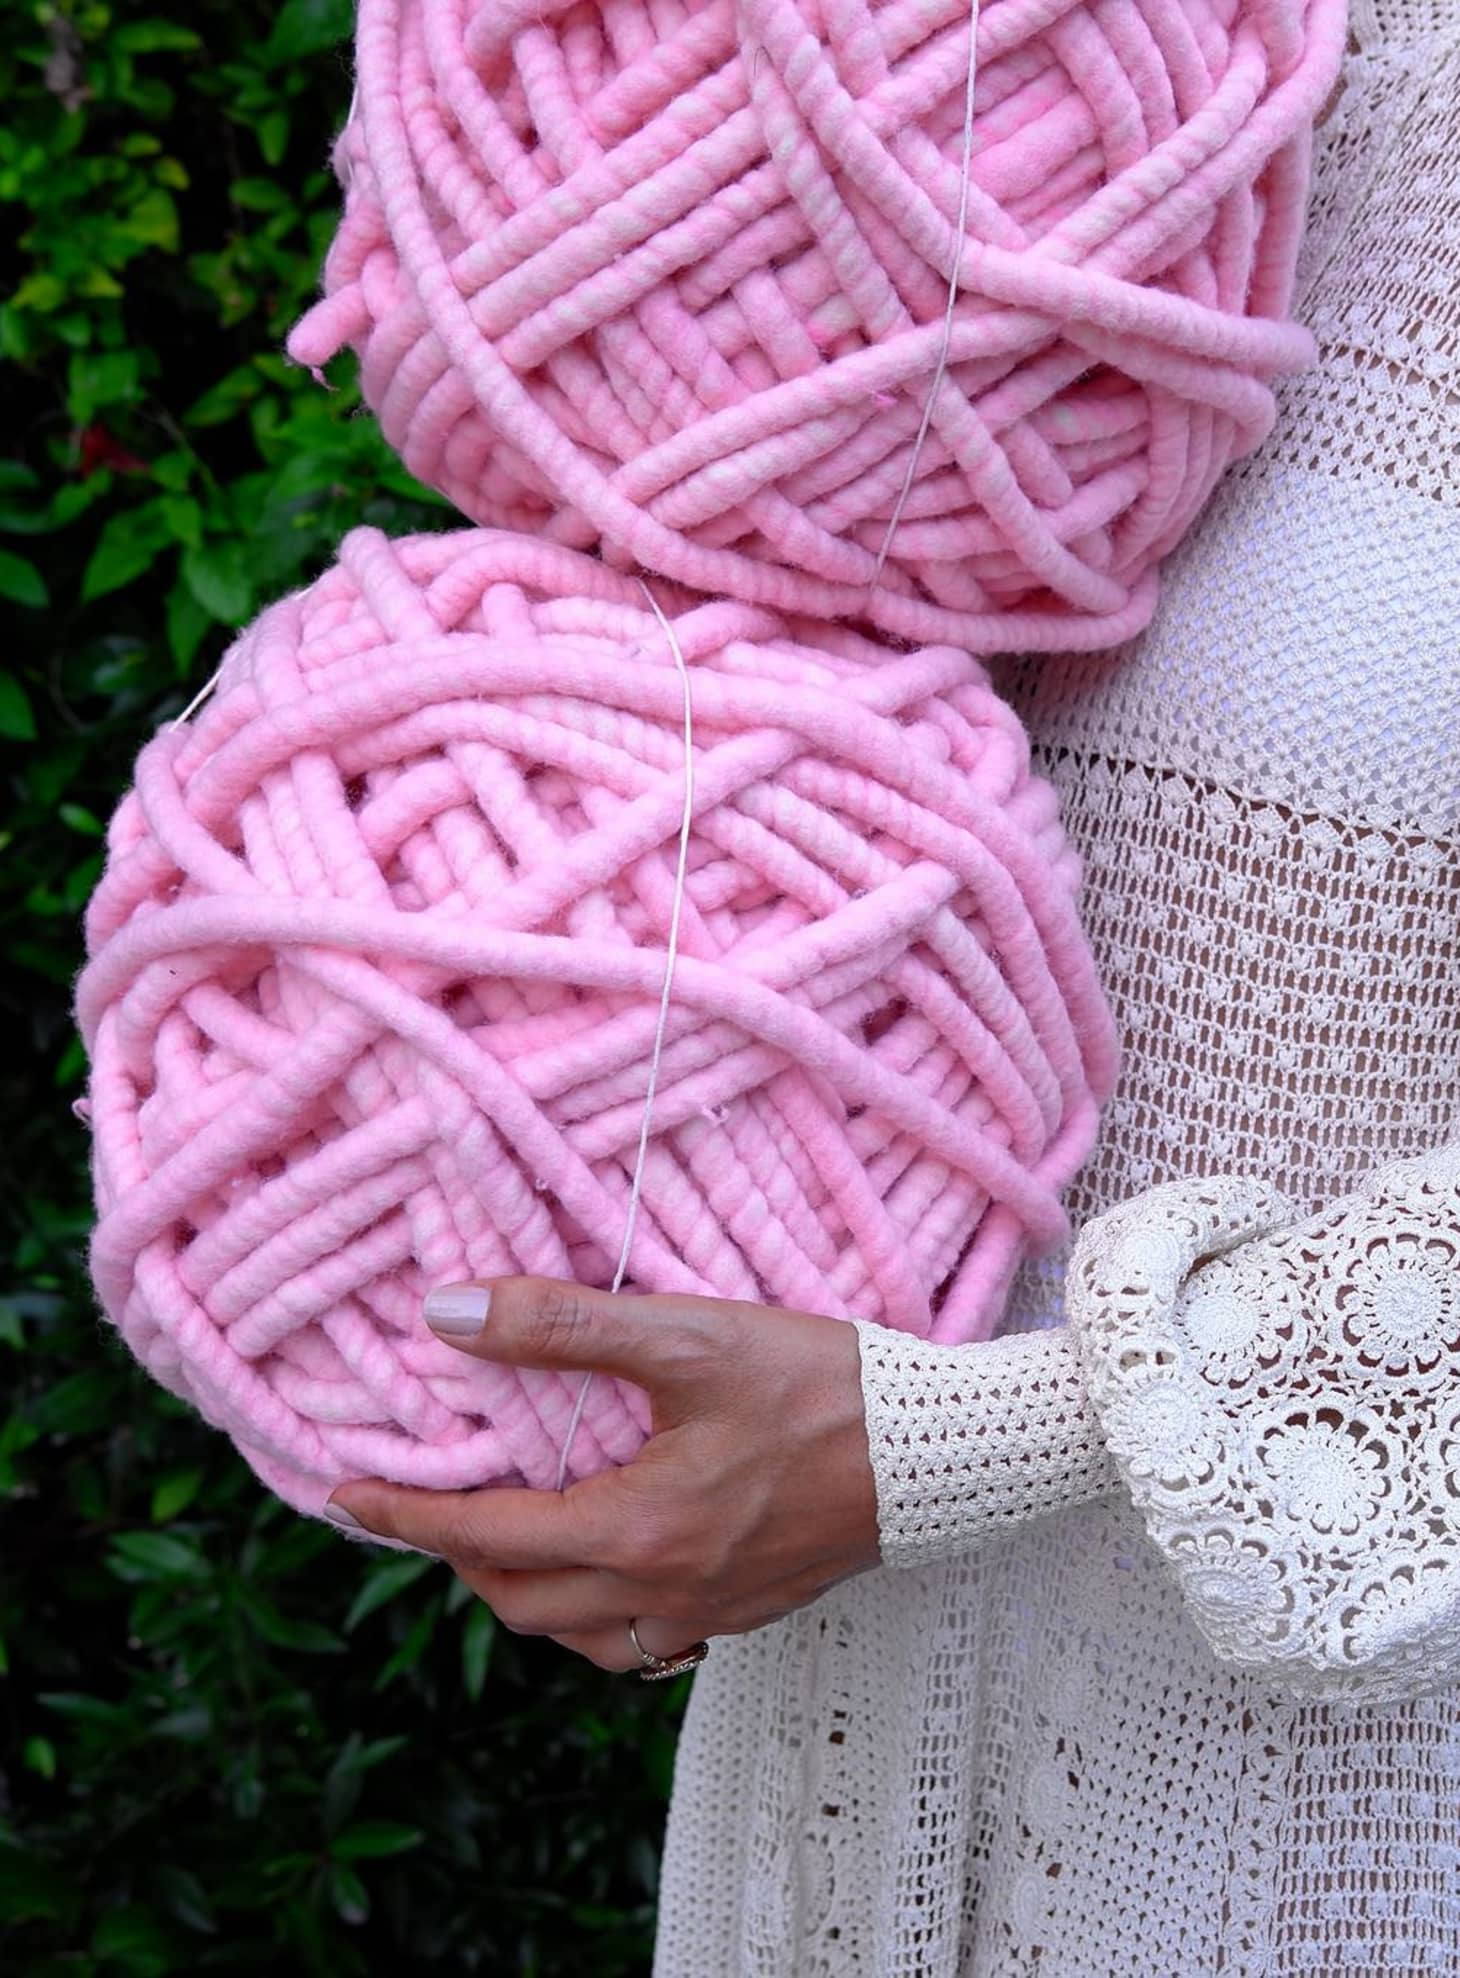 Arm Knitting - Everything You've Ever Wanted to Know